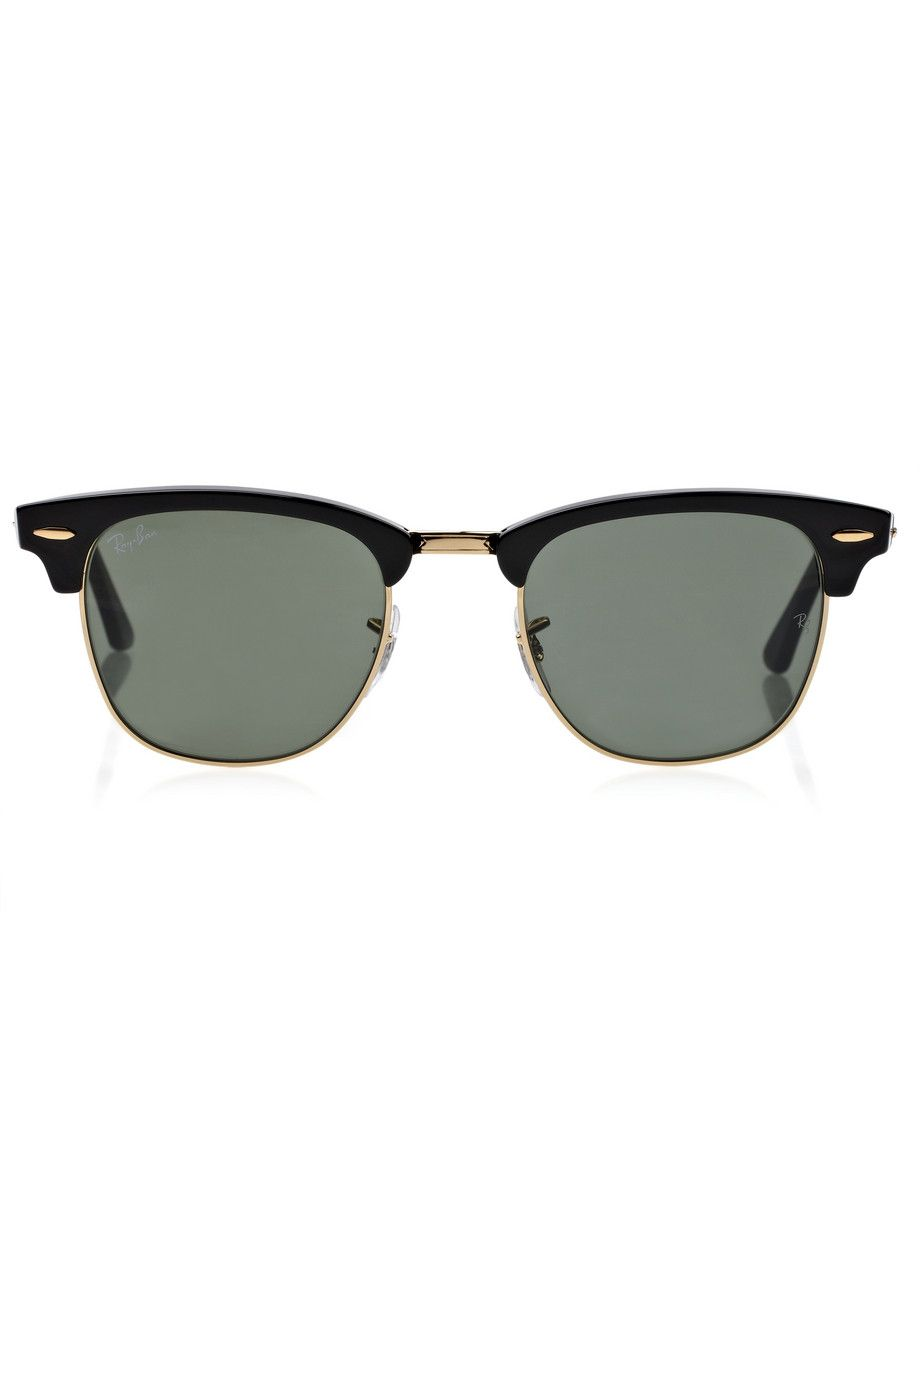 """Ray-Ban black and gold """"Clubmaster"""" half-frame acetate sunglasses, $145"""